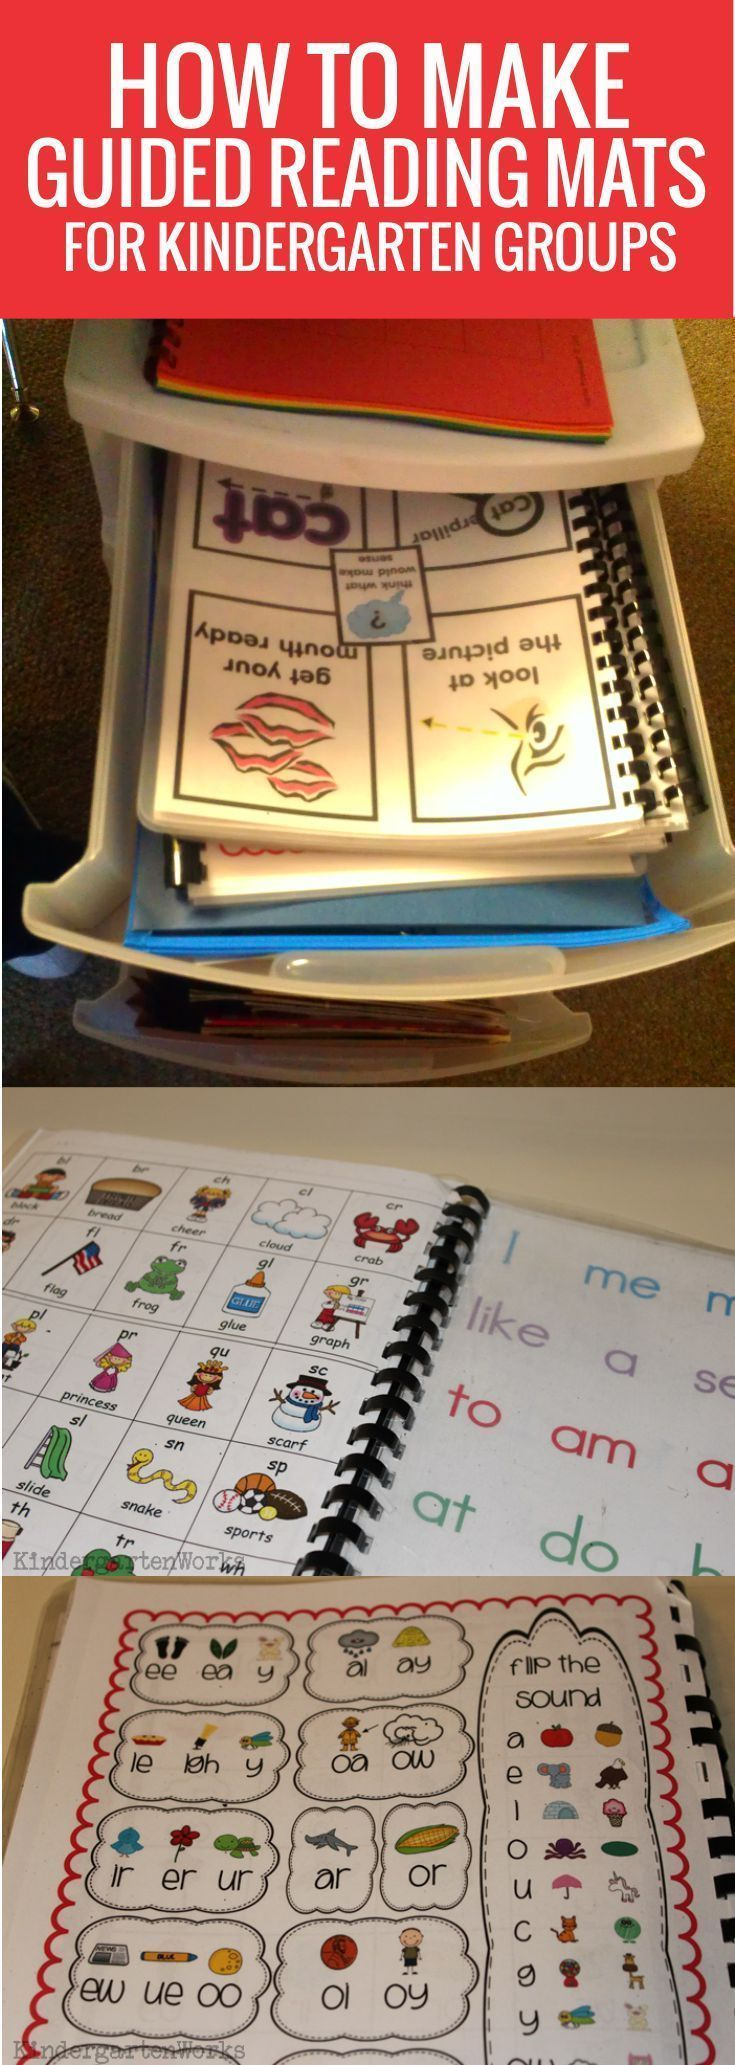 Guided Reading Charts For Kindergarten - This Is Something I